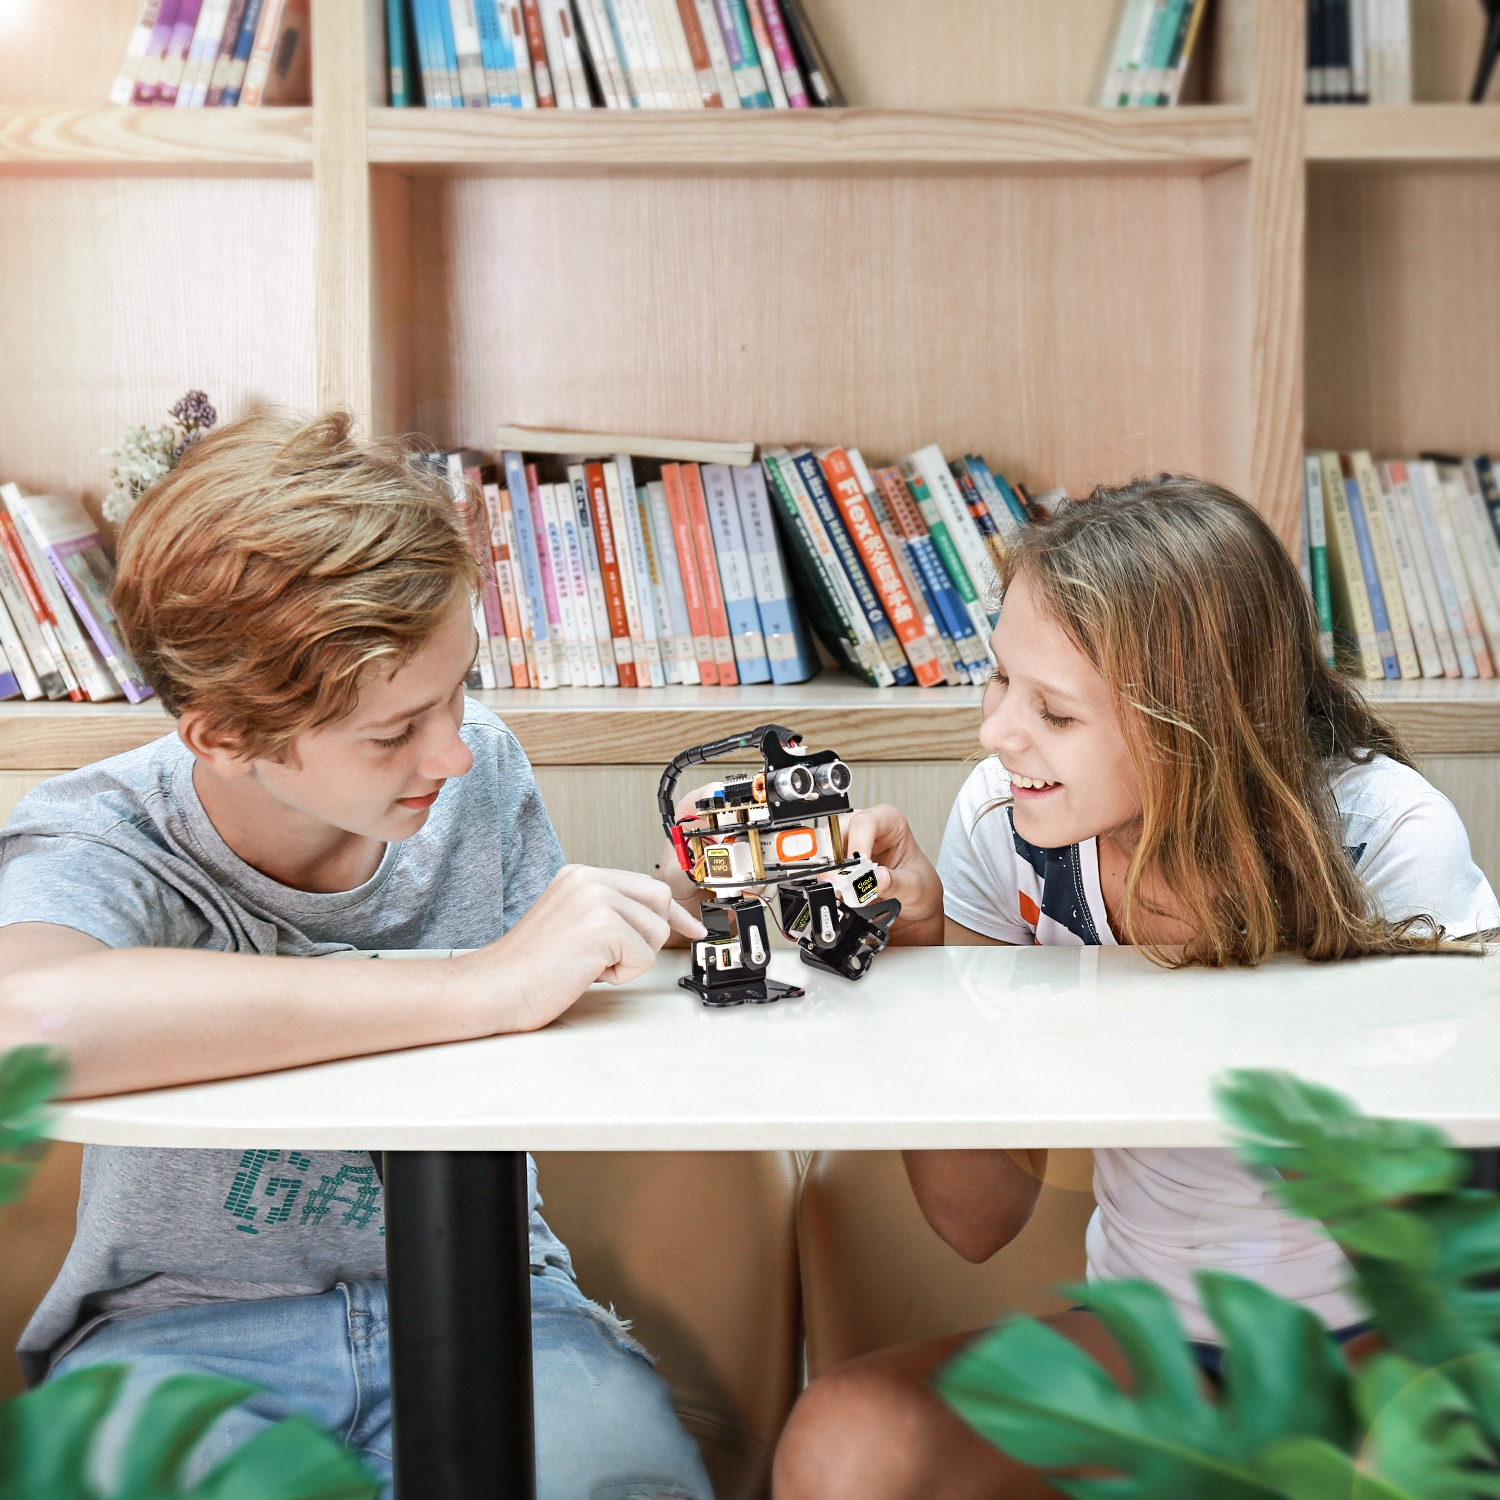 SunFounder Smart Programmable Dancing DIY Robot for Arduino Kids and Adults enlarge